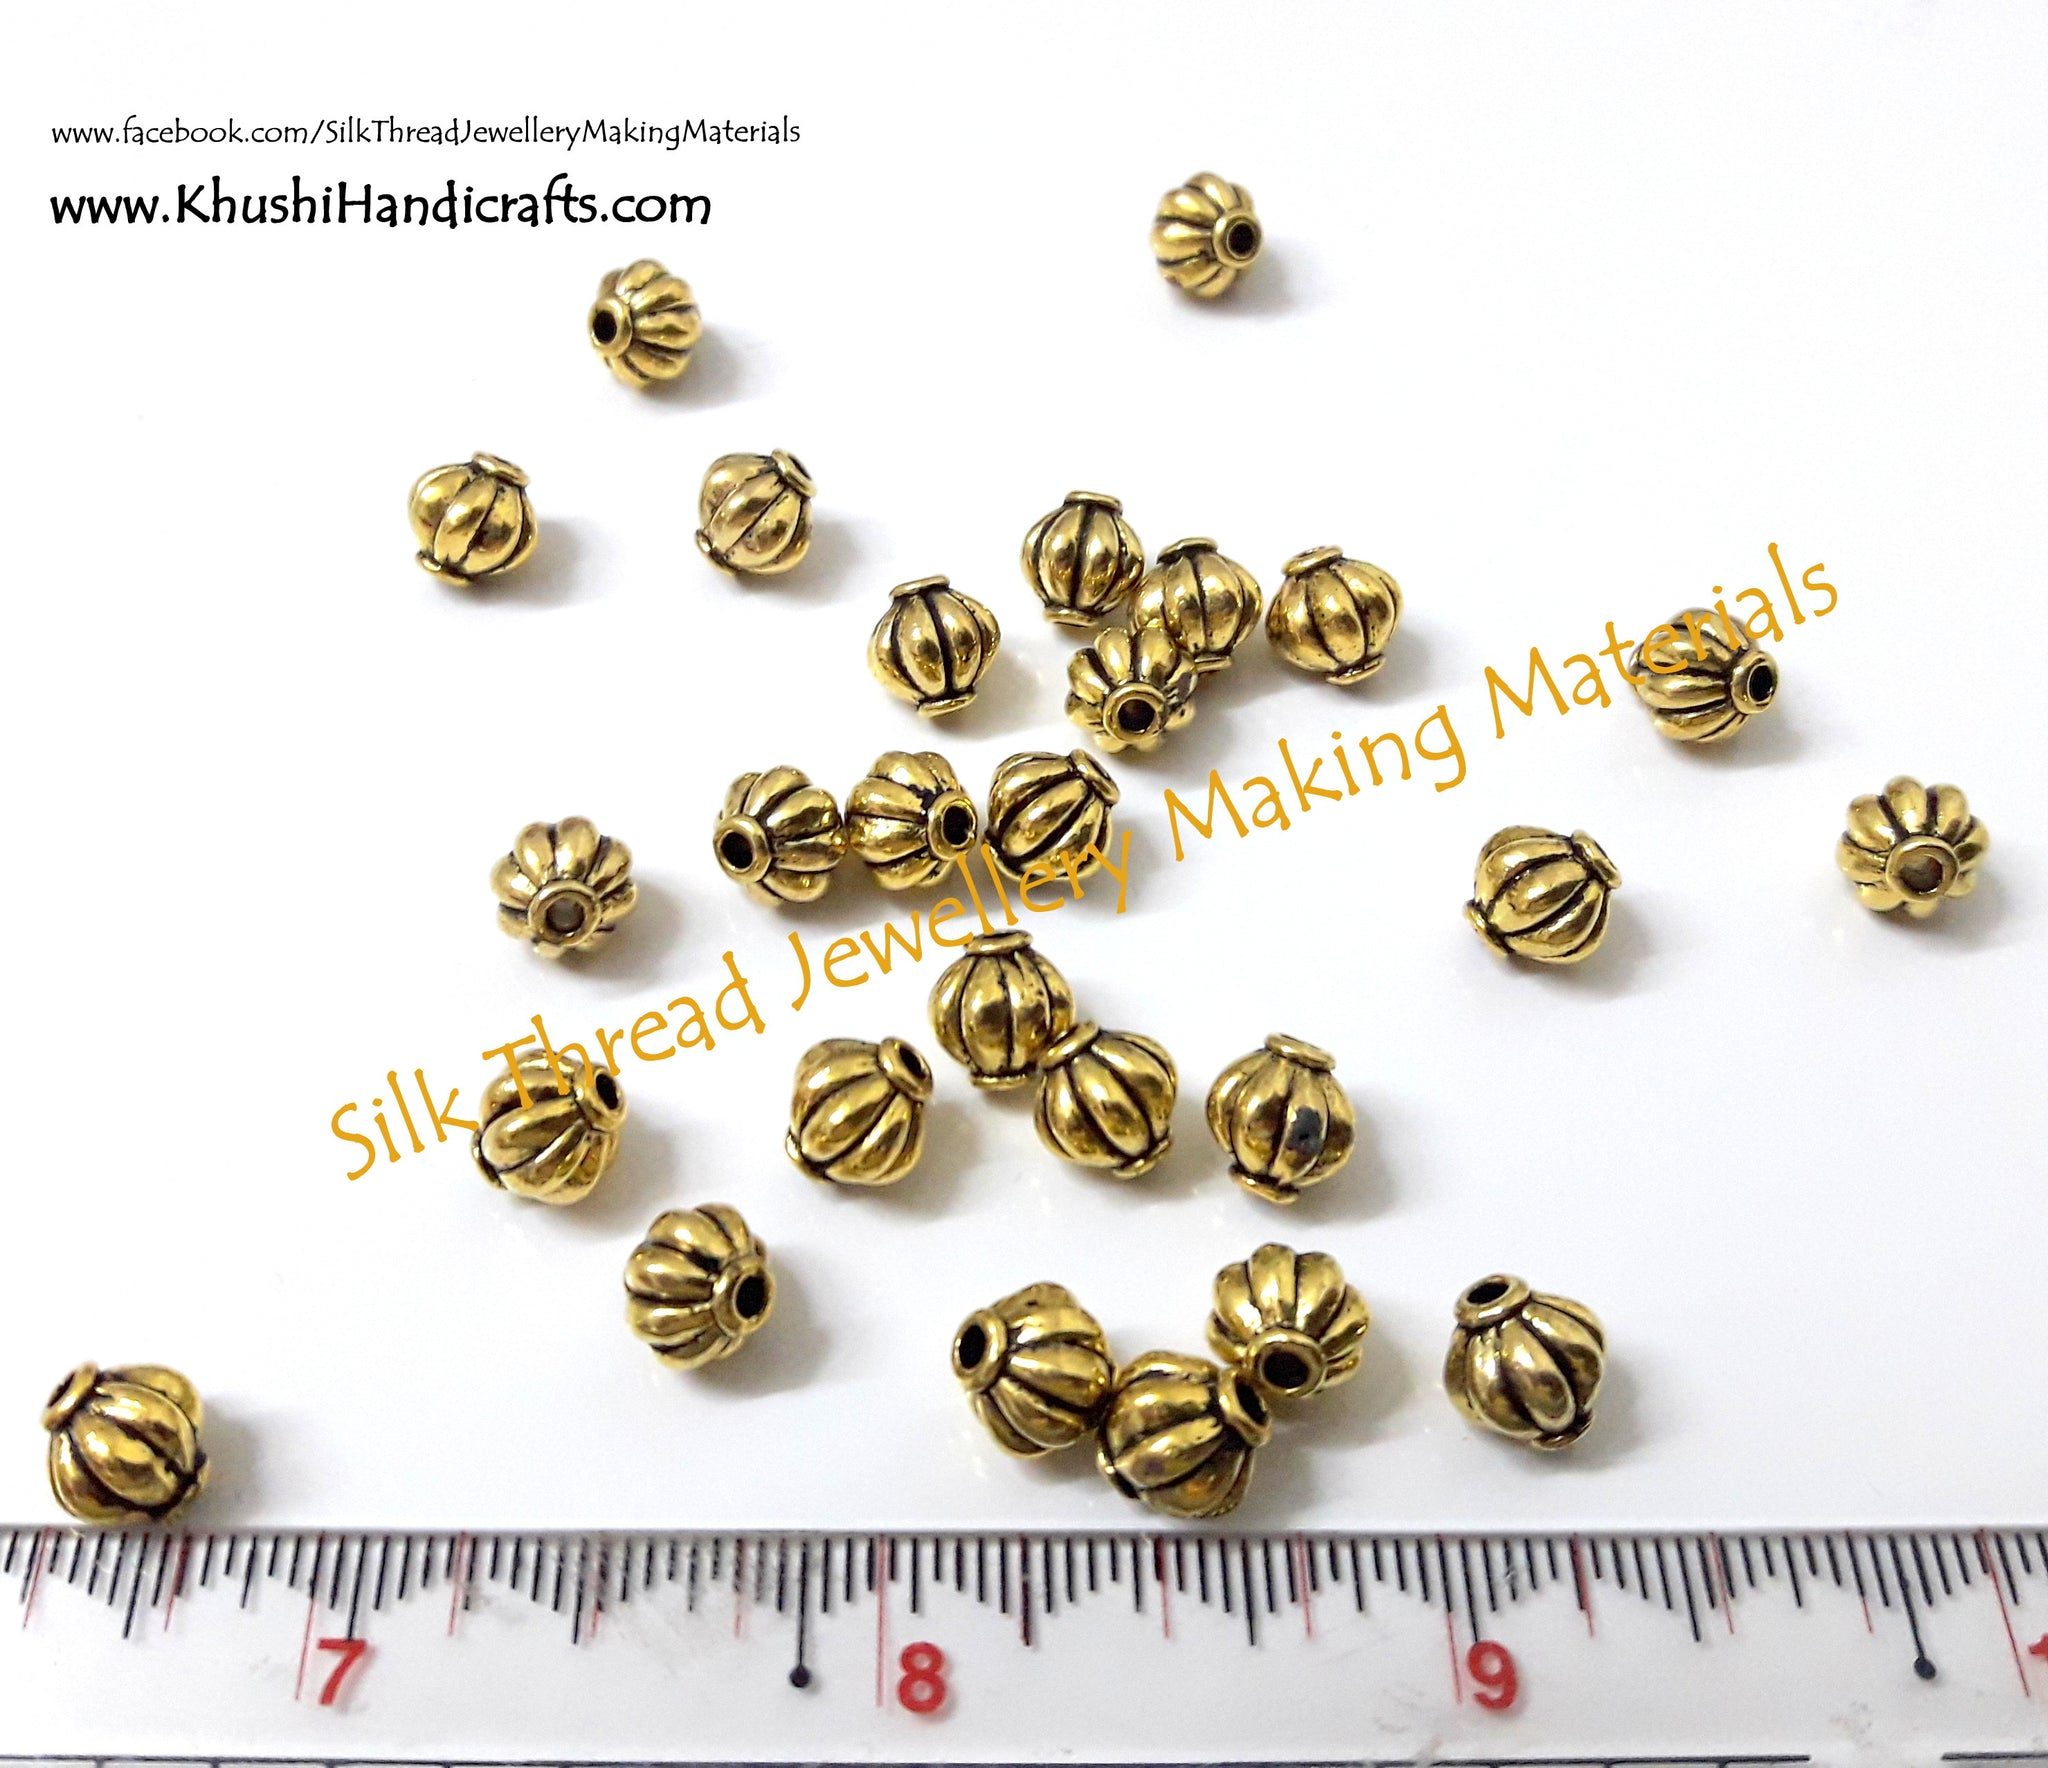 Antique Gold Lantern spacer beads. Jewelry spacer beads